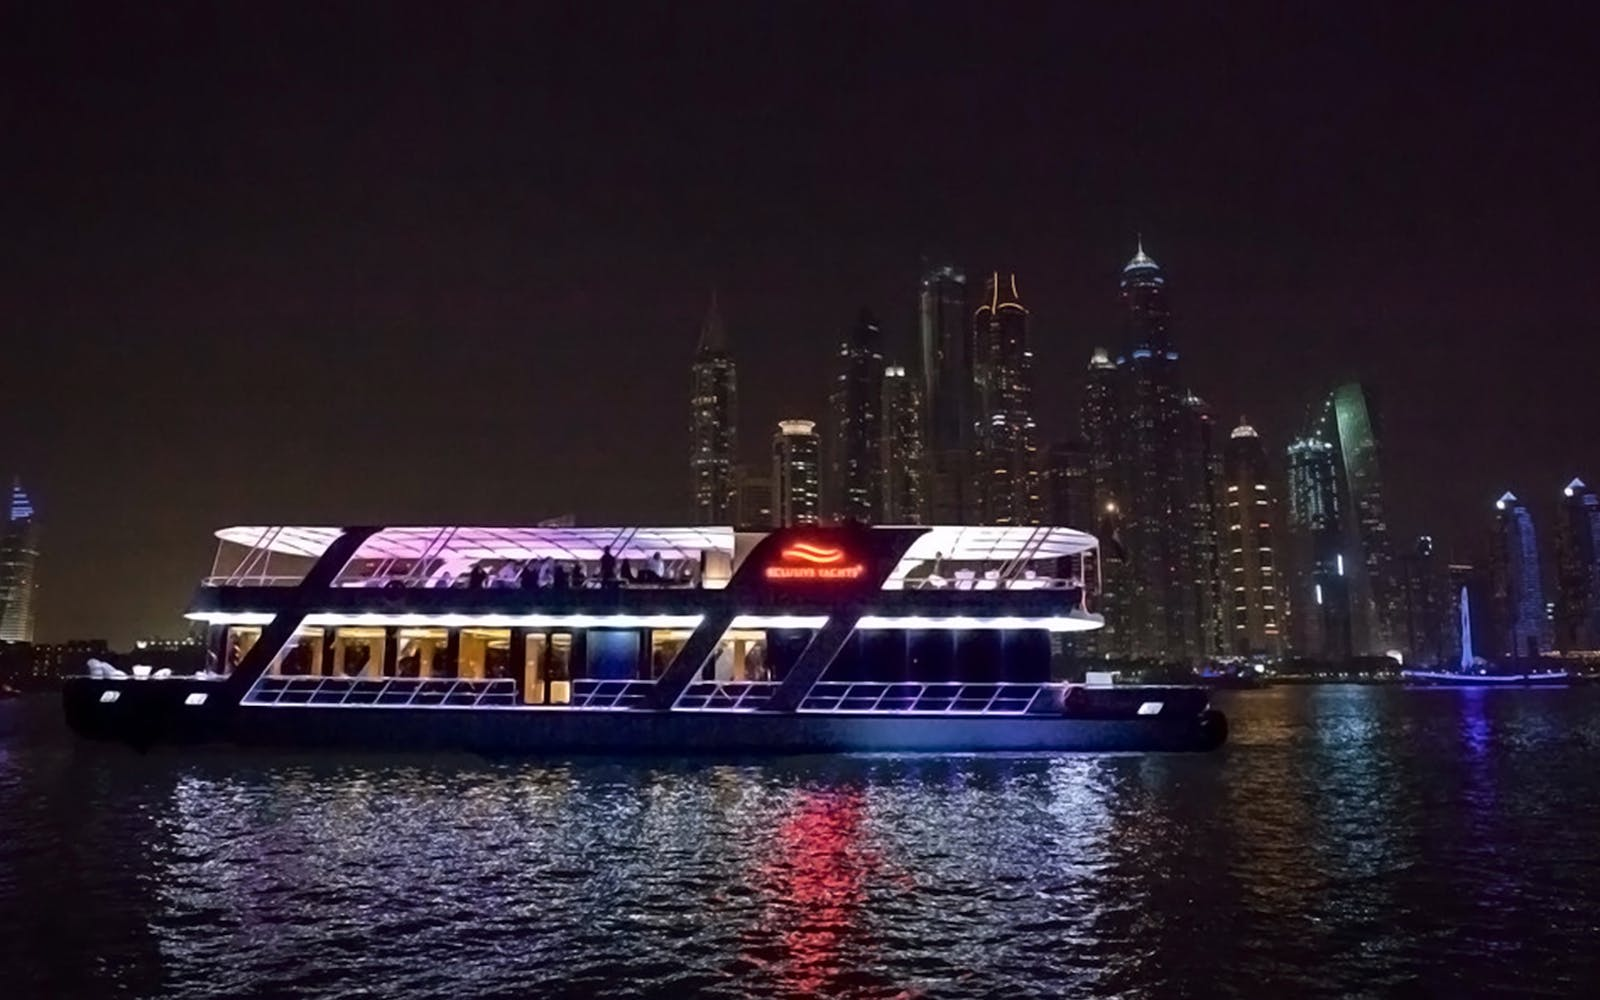 luxury dinner cruise with 5-star hotel buffet spread-2